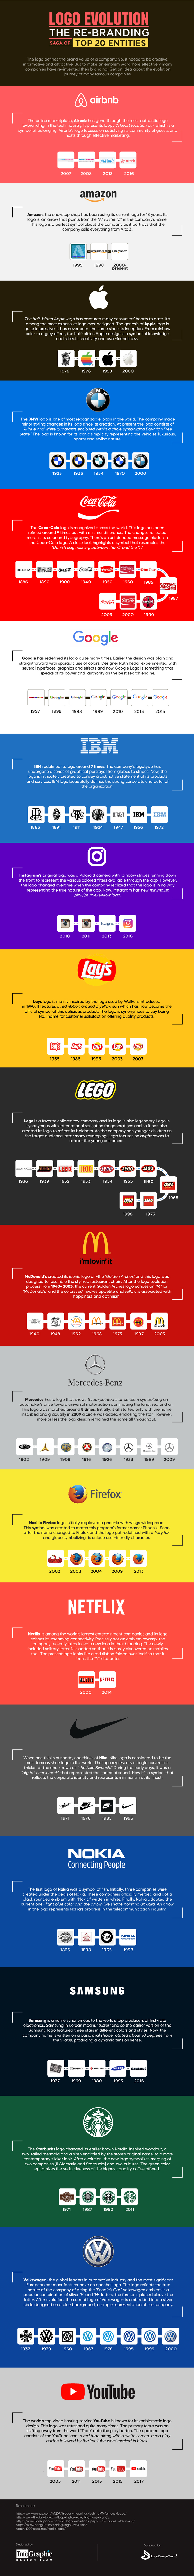 logo-evolution-infographic